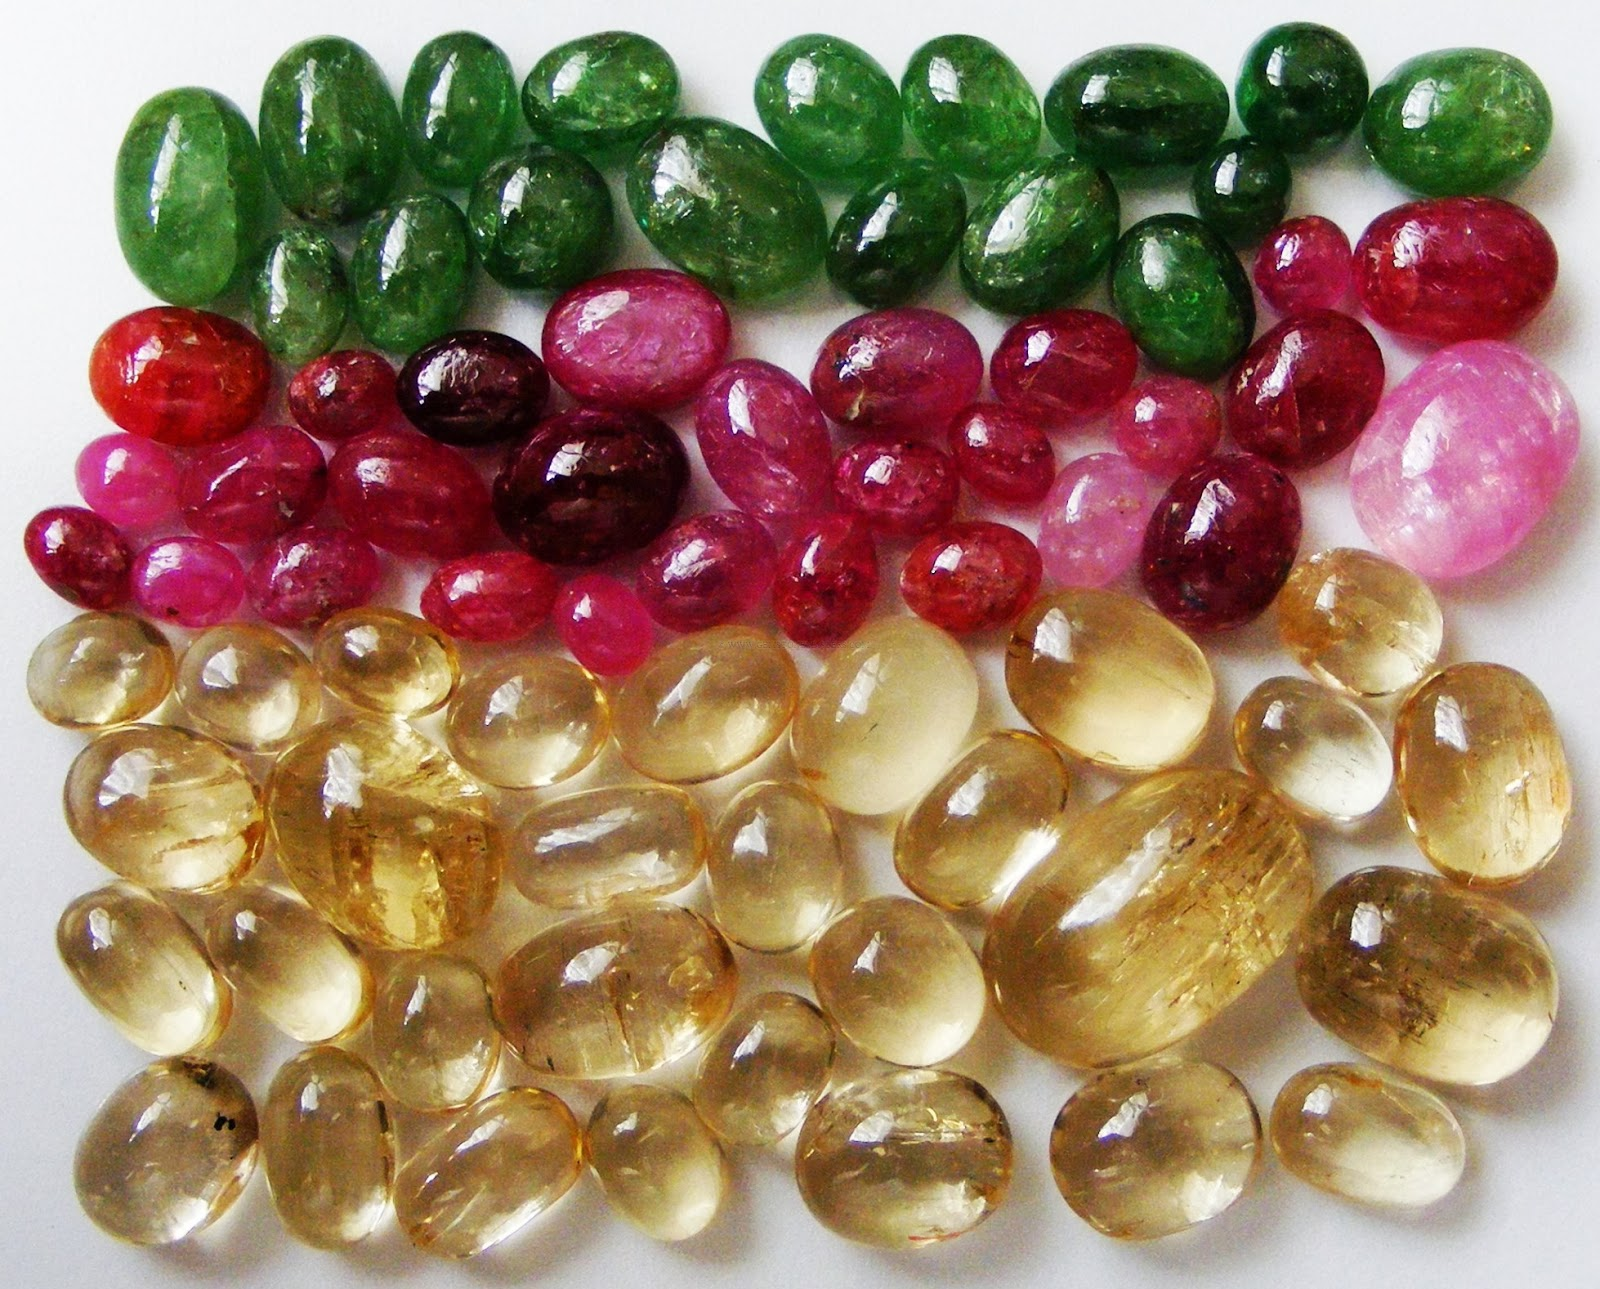 in jewellery kits buy thread collections for findings silk making material orange beads glass jewelry sale materials bulk